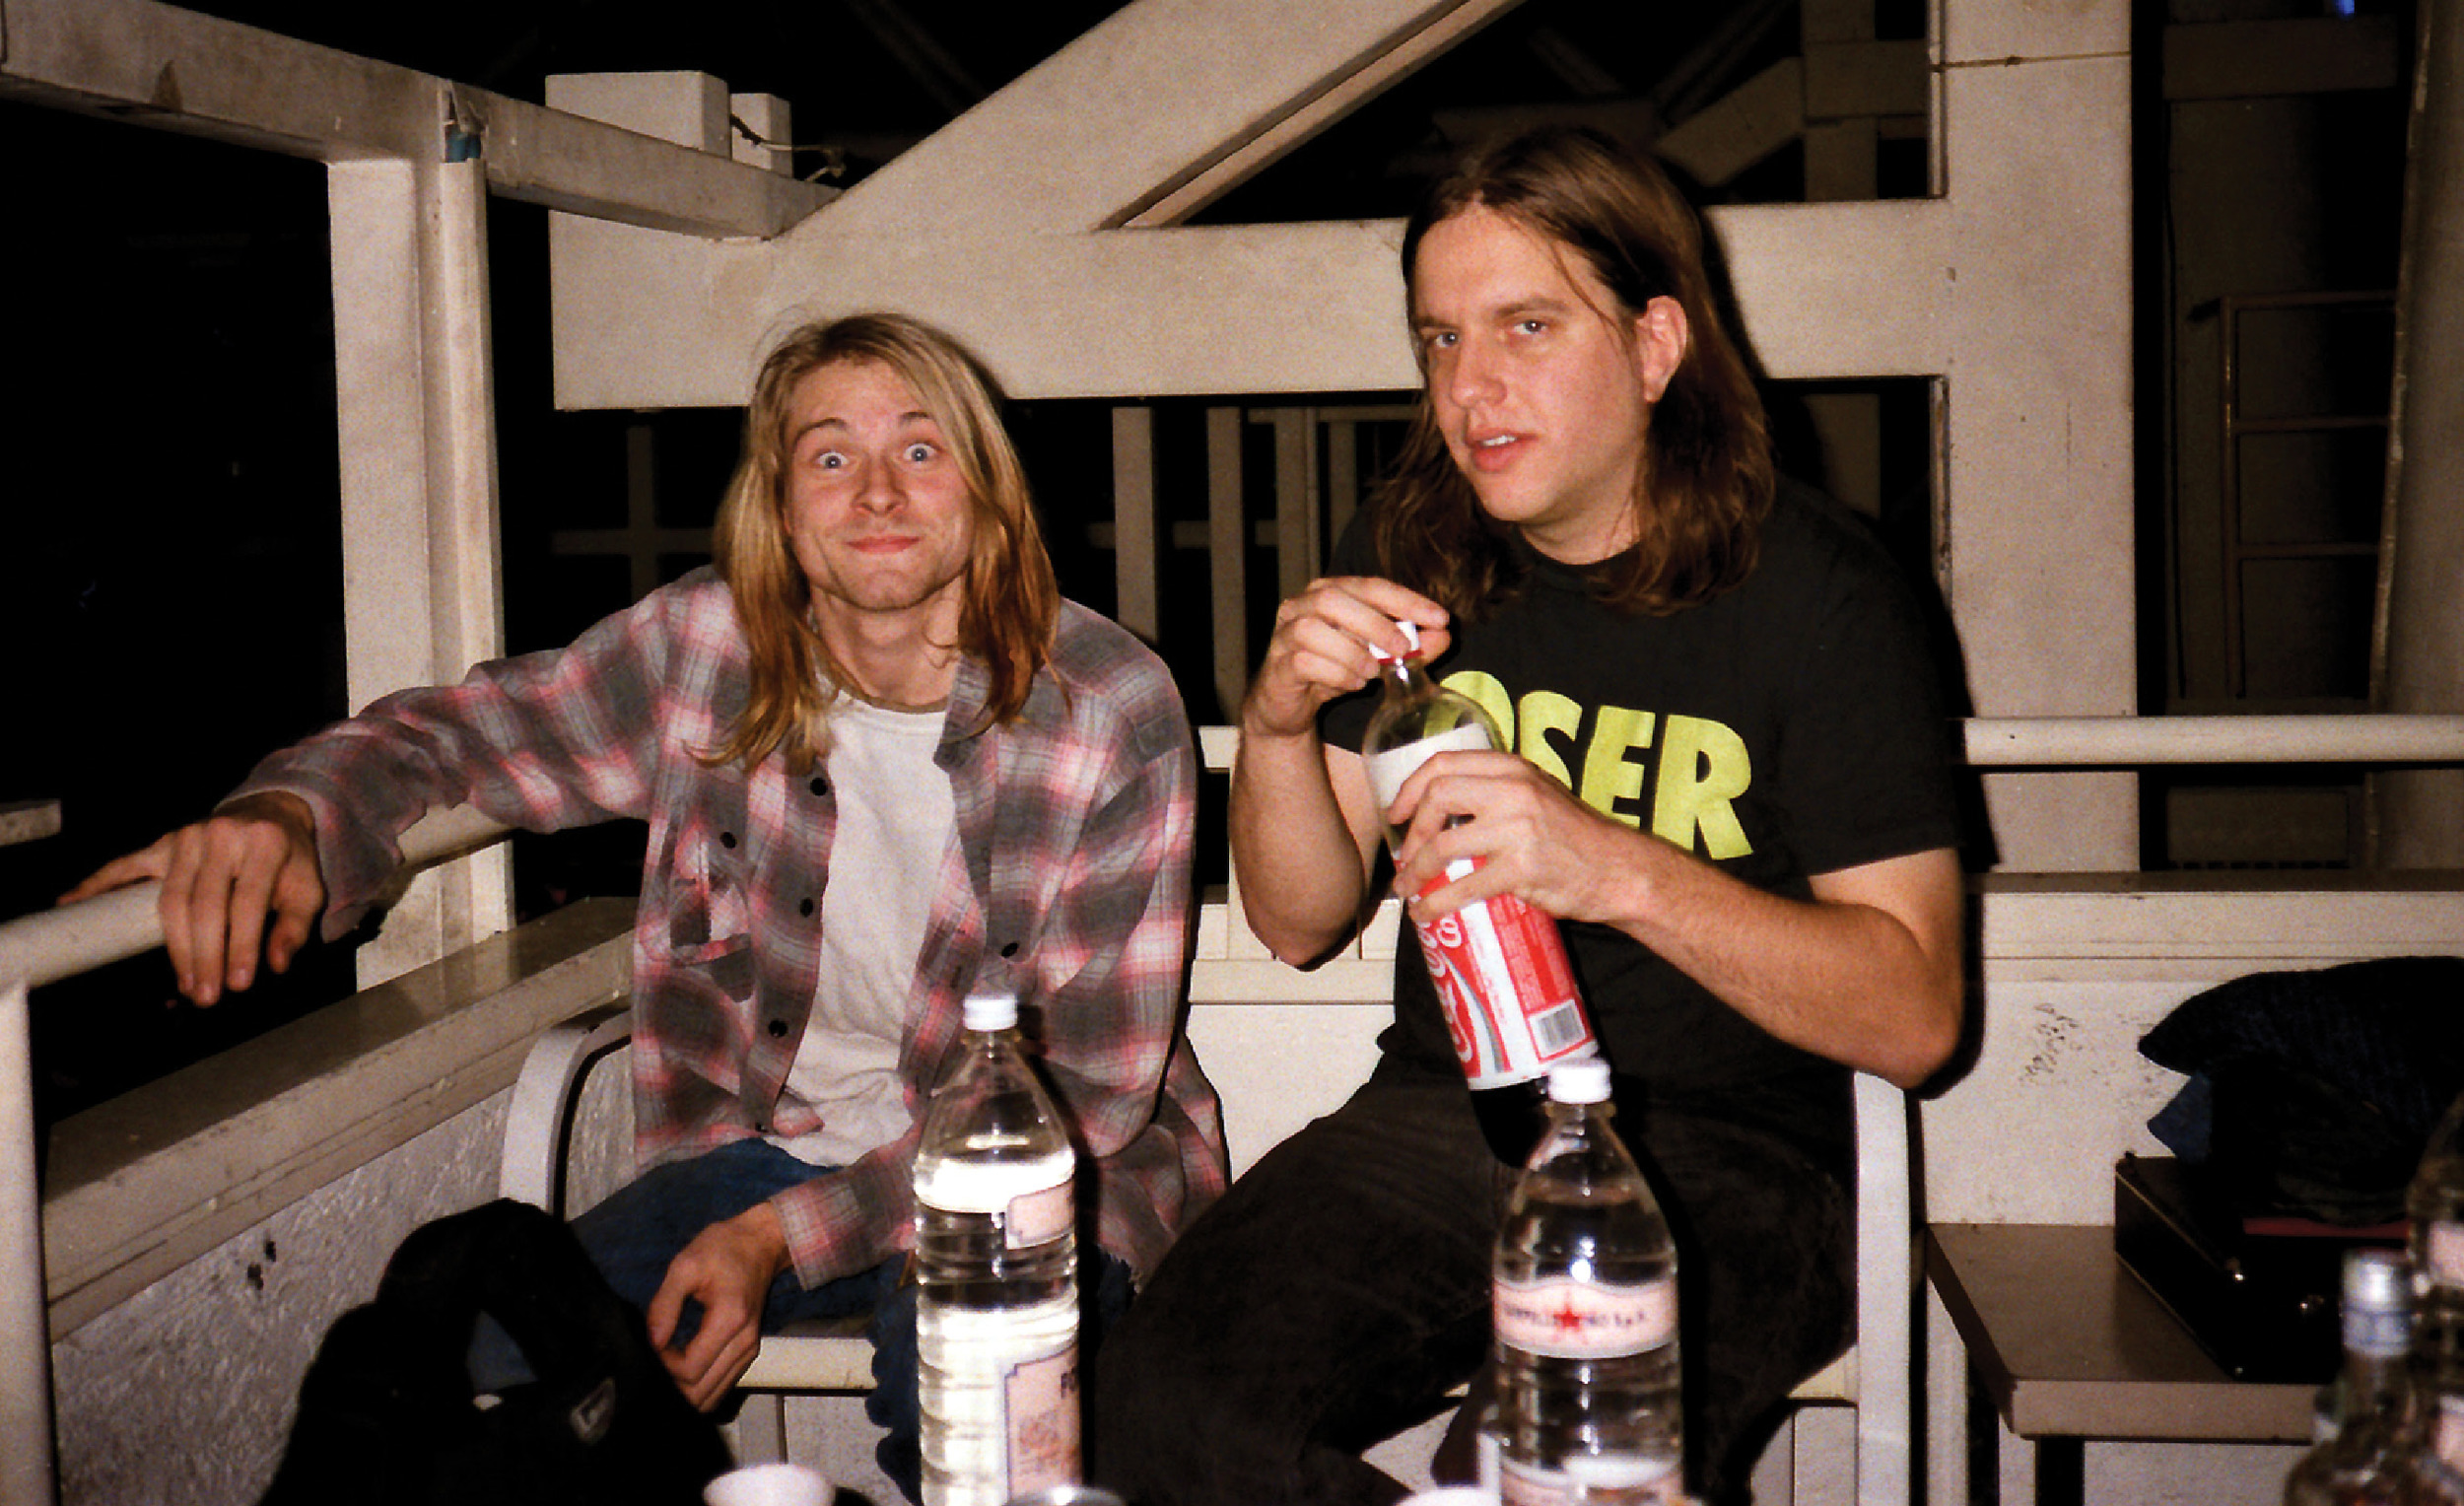 Kurt Cobain with Jonathan Poneman, 1989